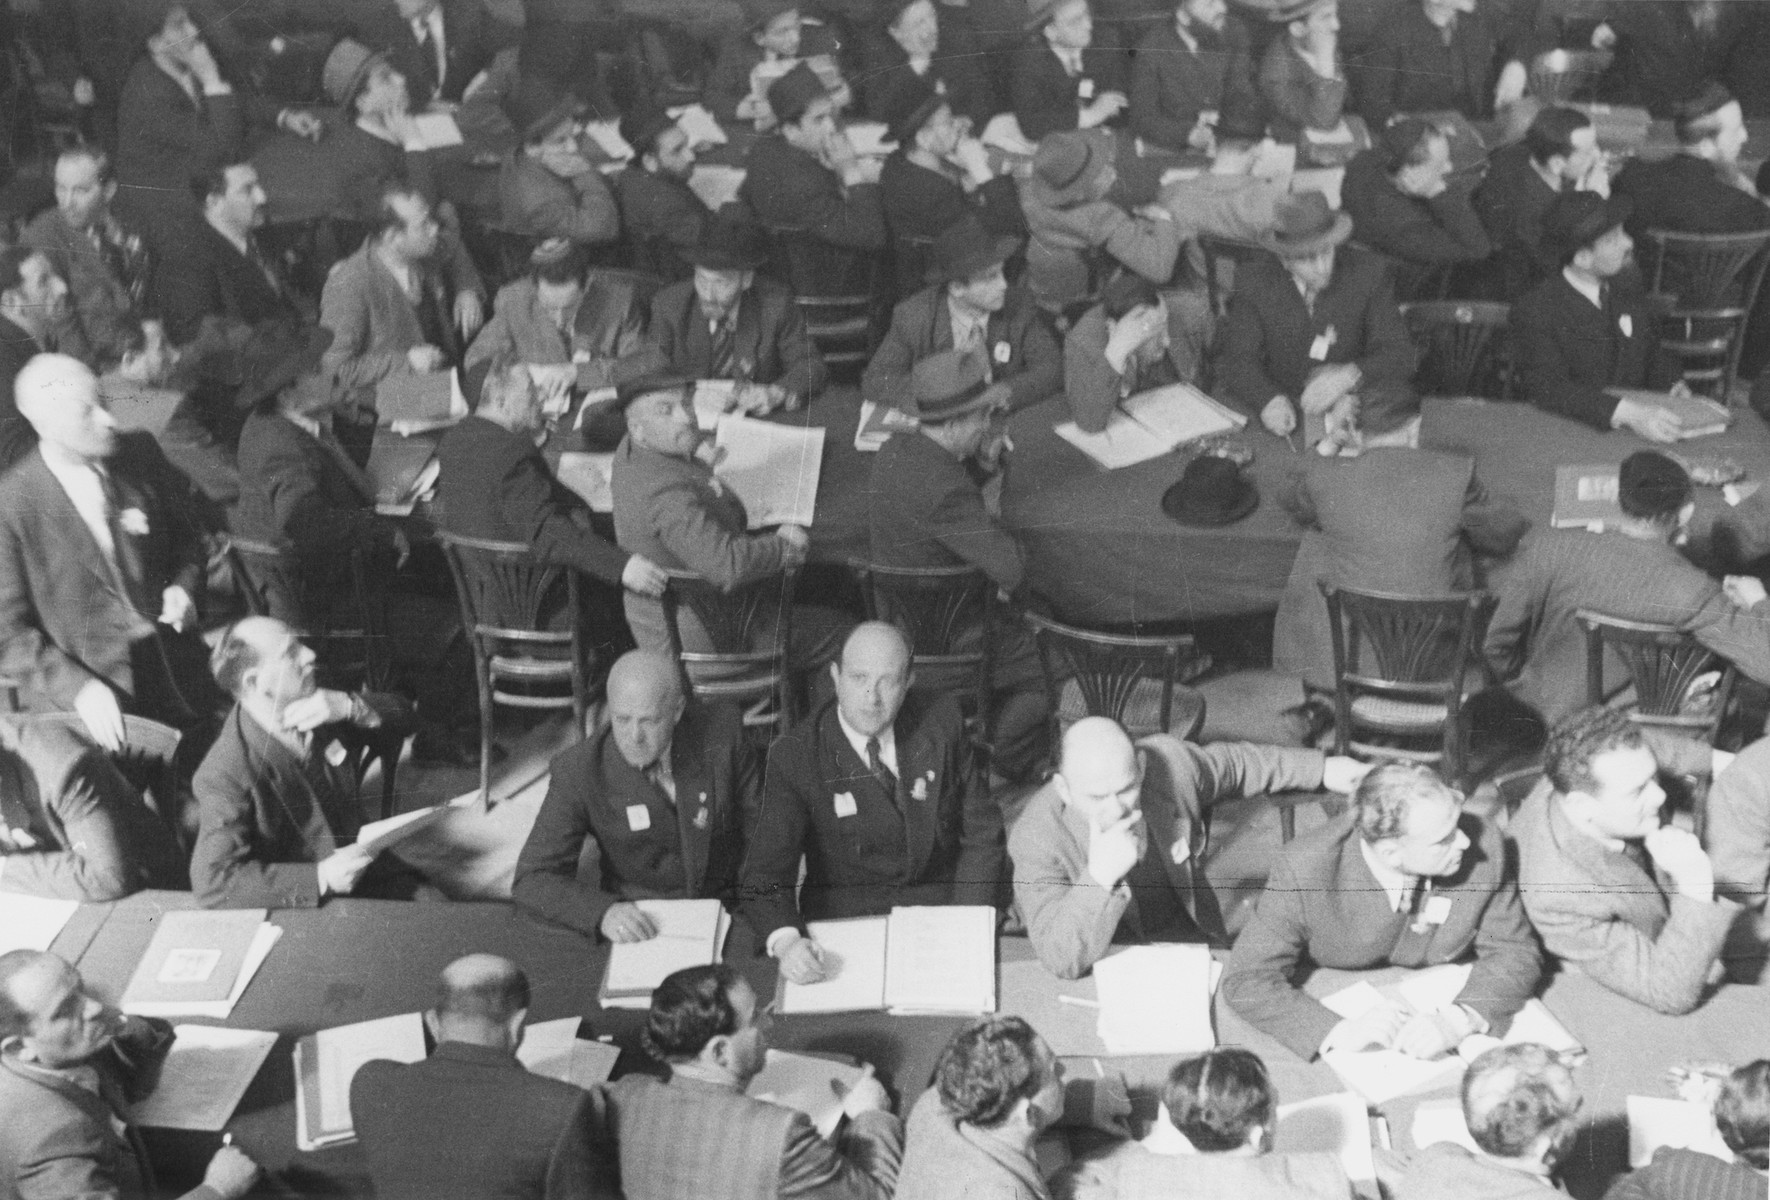 Delegates from the three occupied zones of Germany meet at the Third Congress of the Central Committee of the Liberated Jewish in the US Zone that is being held in Bad Reichenhall.  Josef Rosensaft is pictured at the bottom left-hand corner.